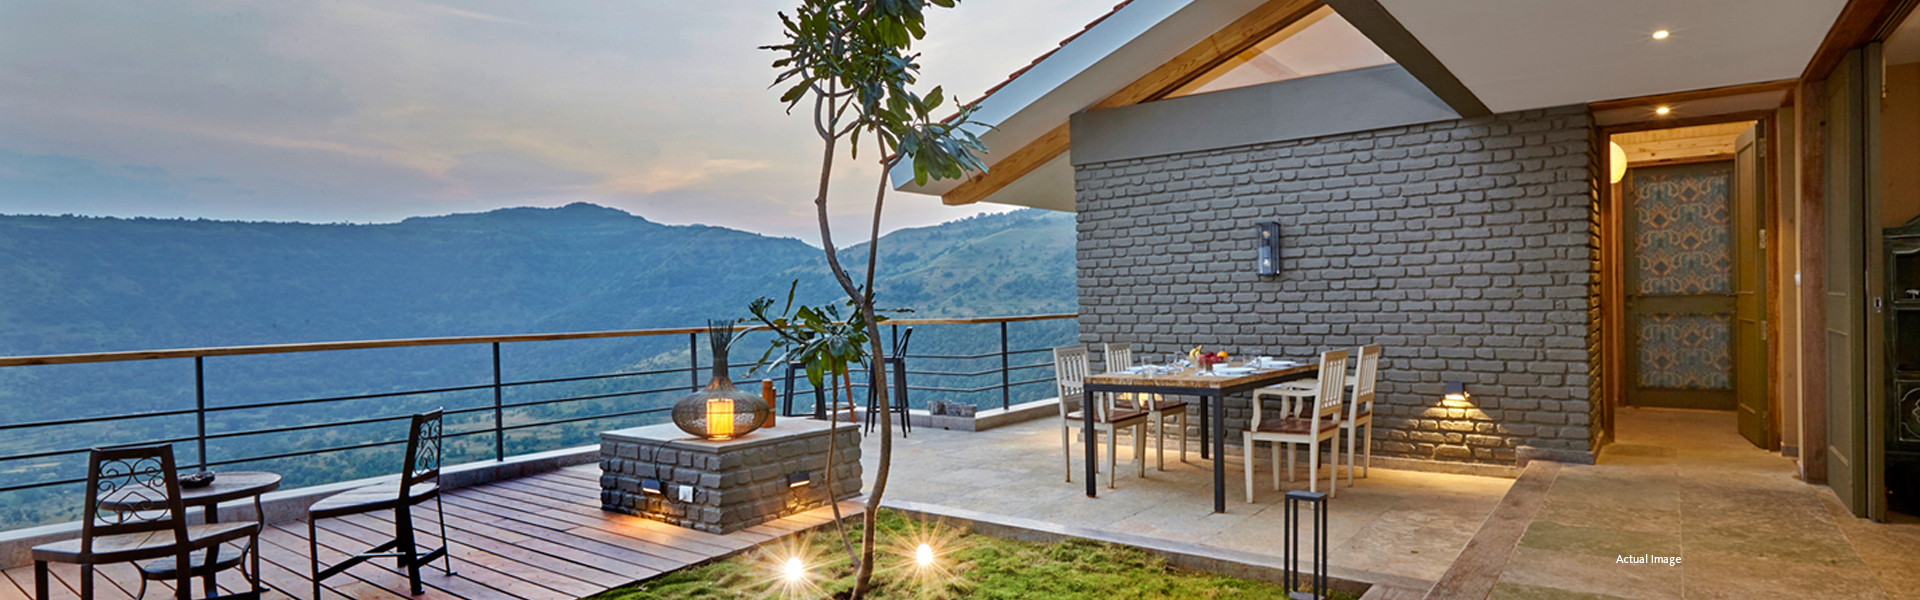 Holiday Homes in Pune